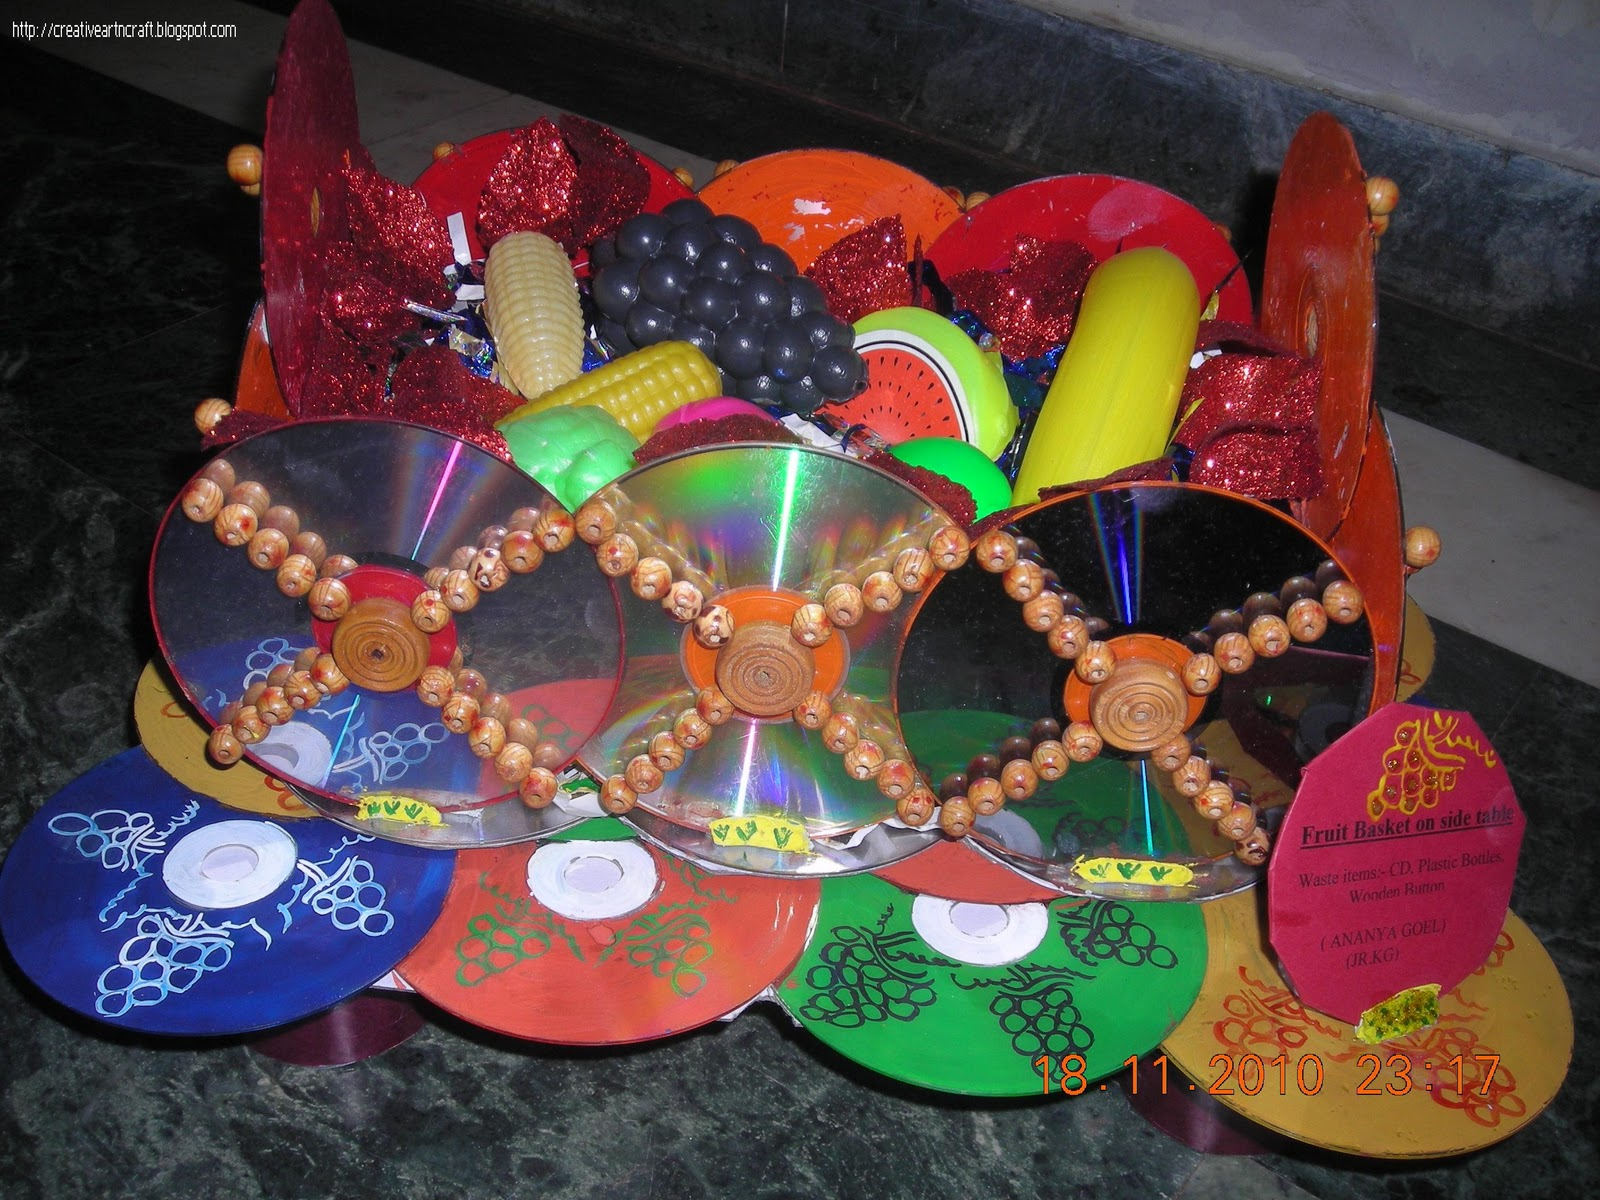 crafts work with waste materials